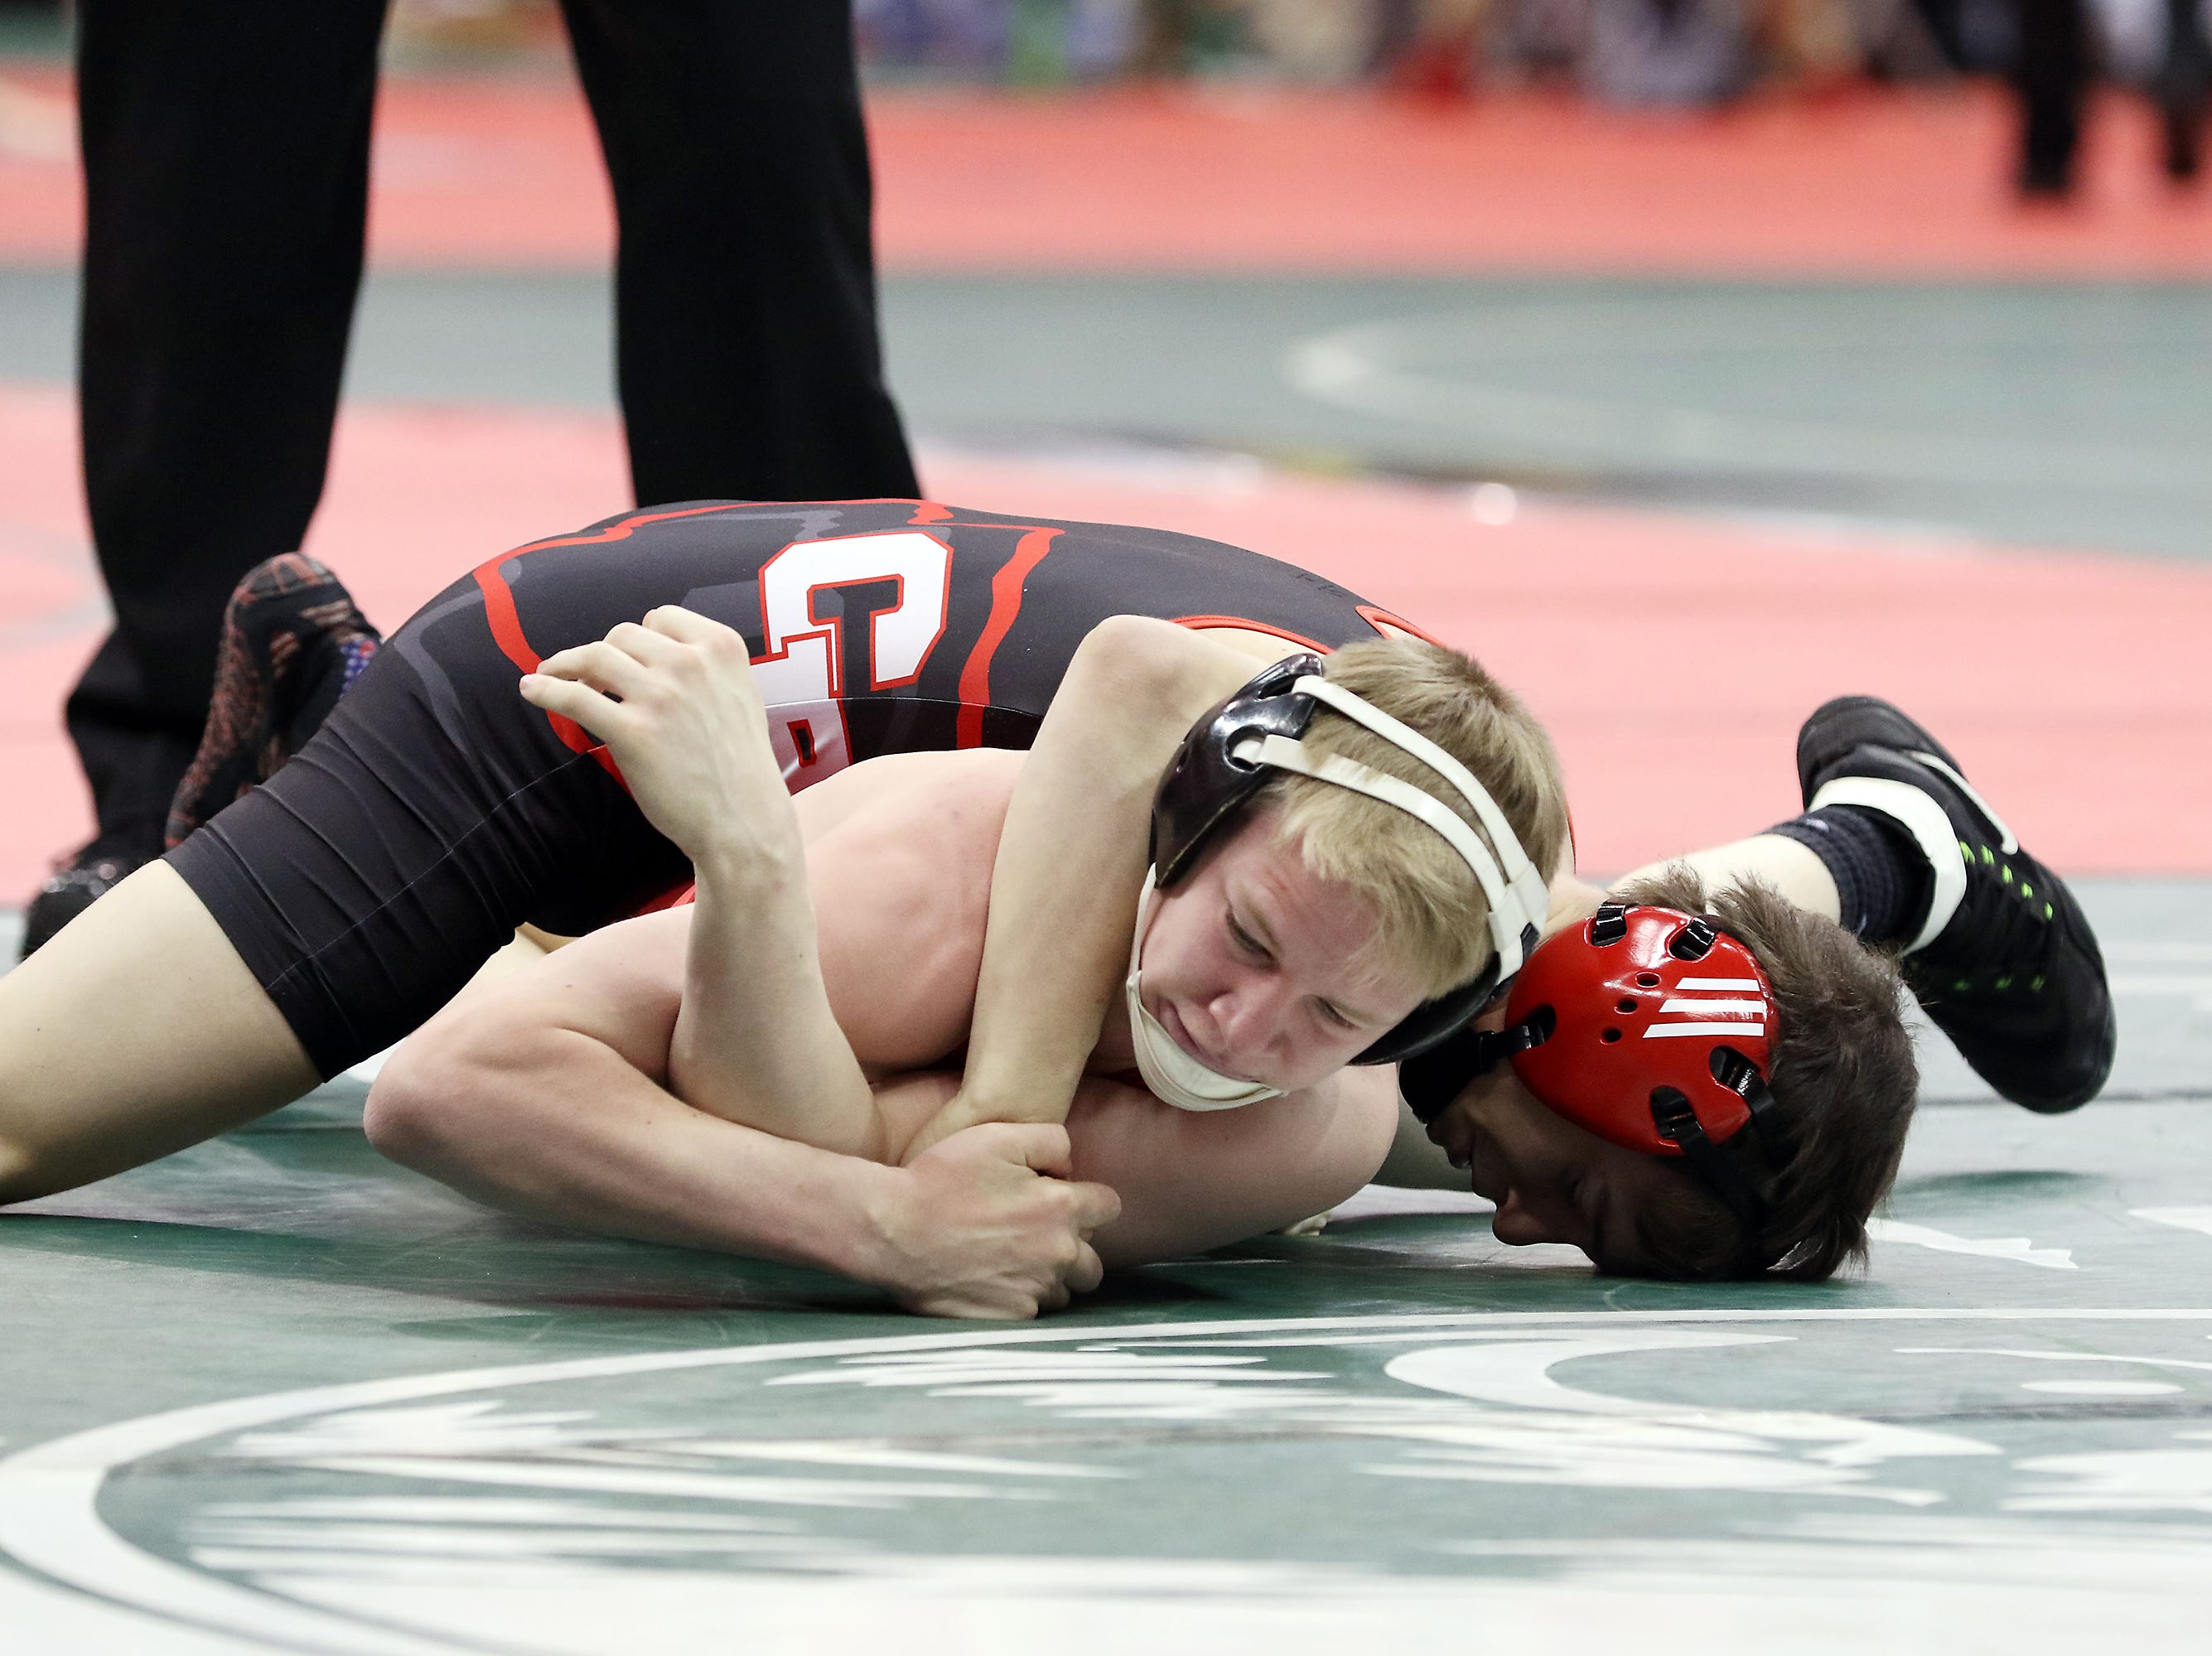 Coshocton's Lucian Brink wrestles Oak Harbor's Tyler Davis in the 113 pound weight class at the Division III state wrestling tournament in Columbus on Friday.